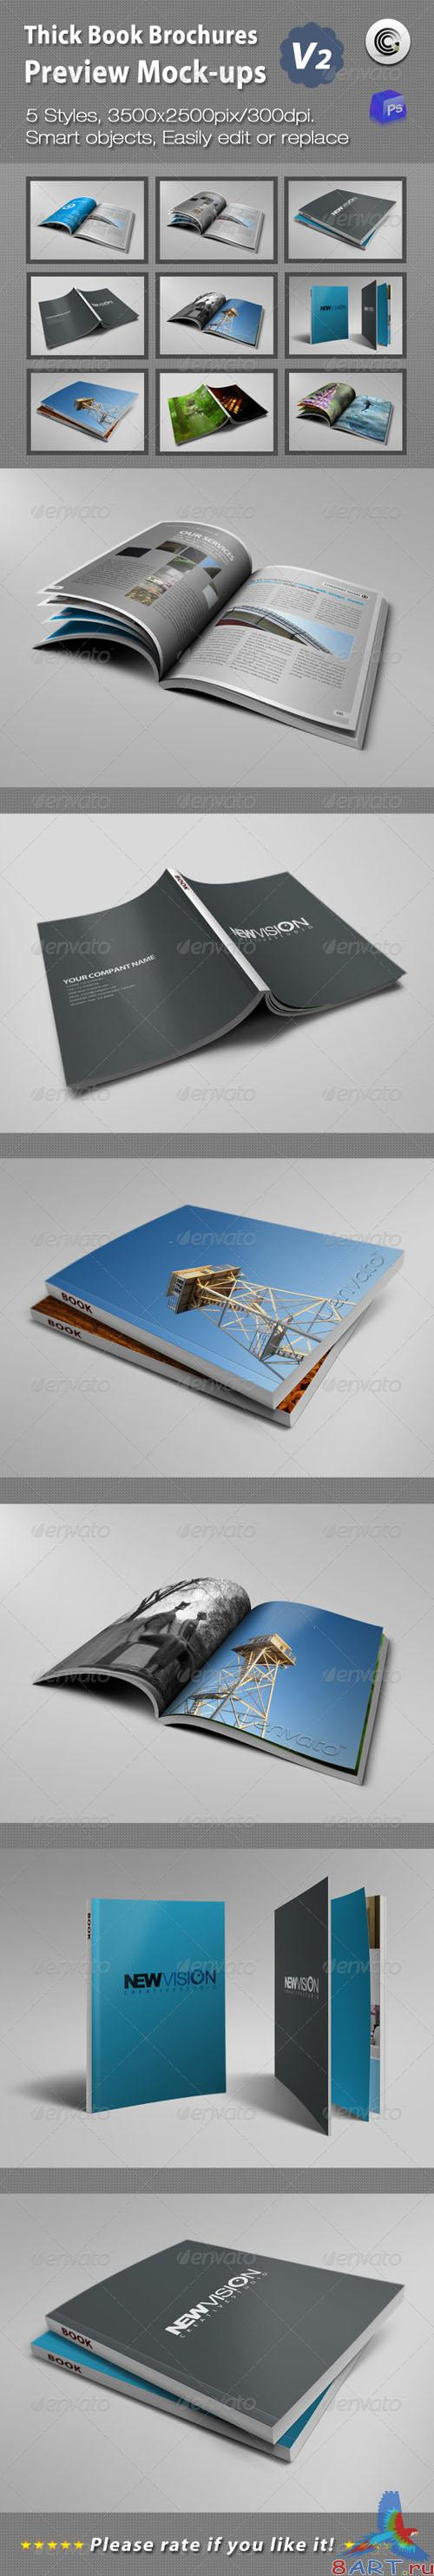 GraphicRiver - Thick Book Brochures Preview Mock-Ups V2 - 1866029